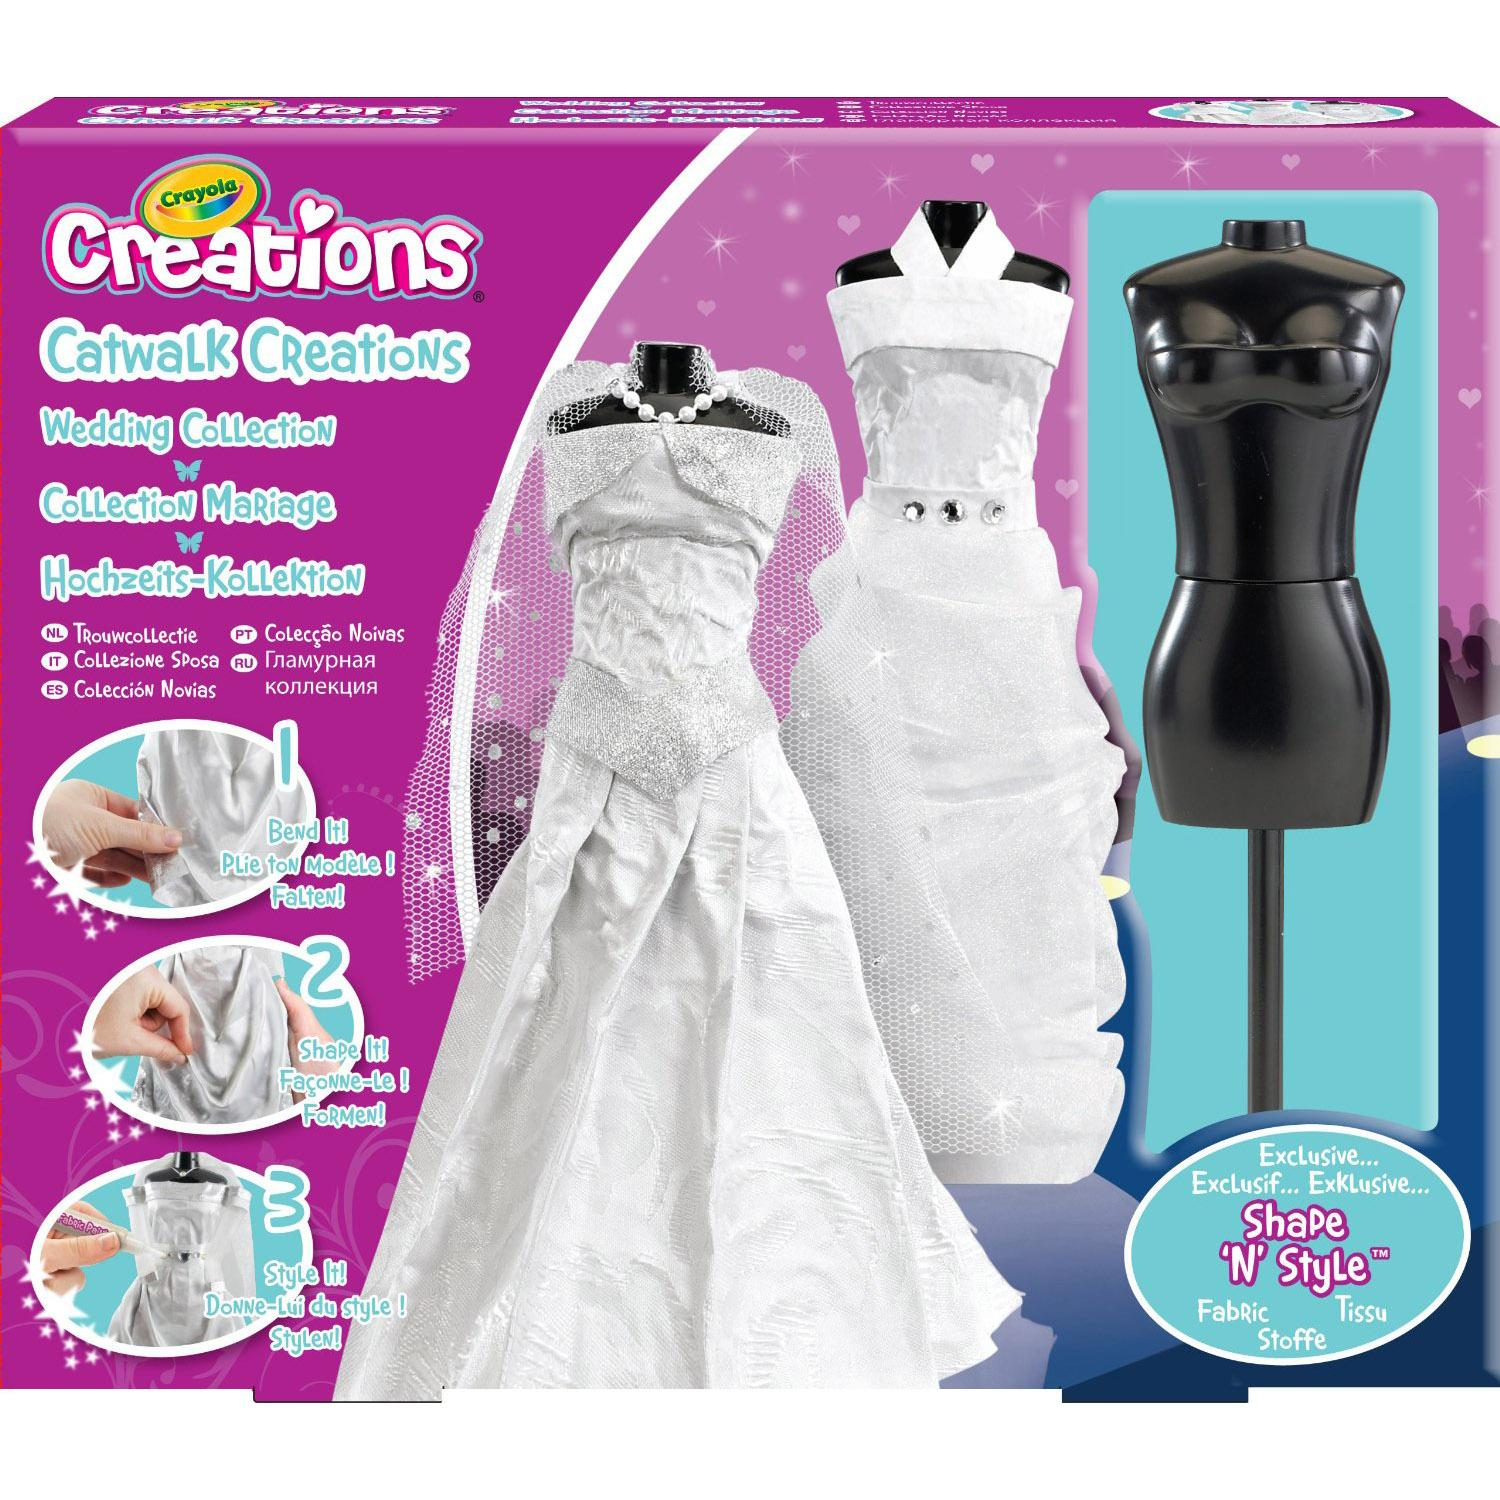 Crayola Catwalk Creations Wedding Collection Fashion Designer Design Set Ebay